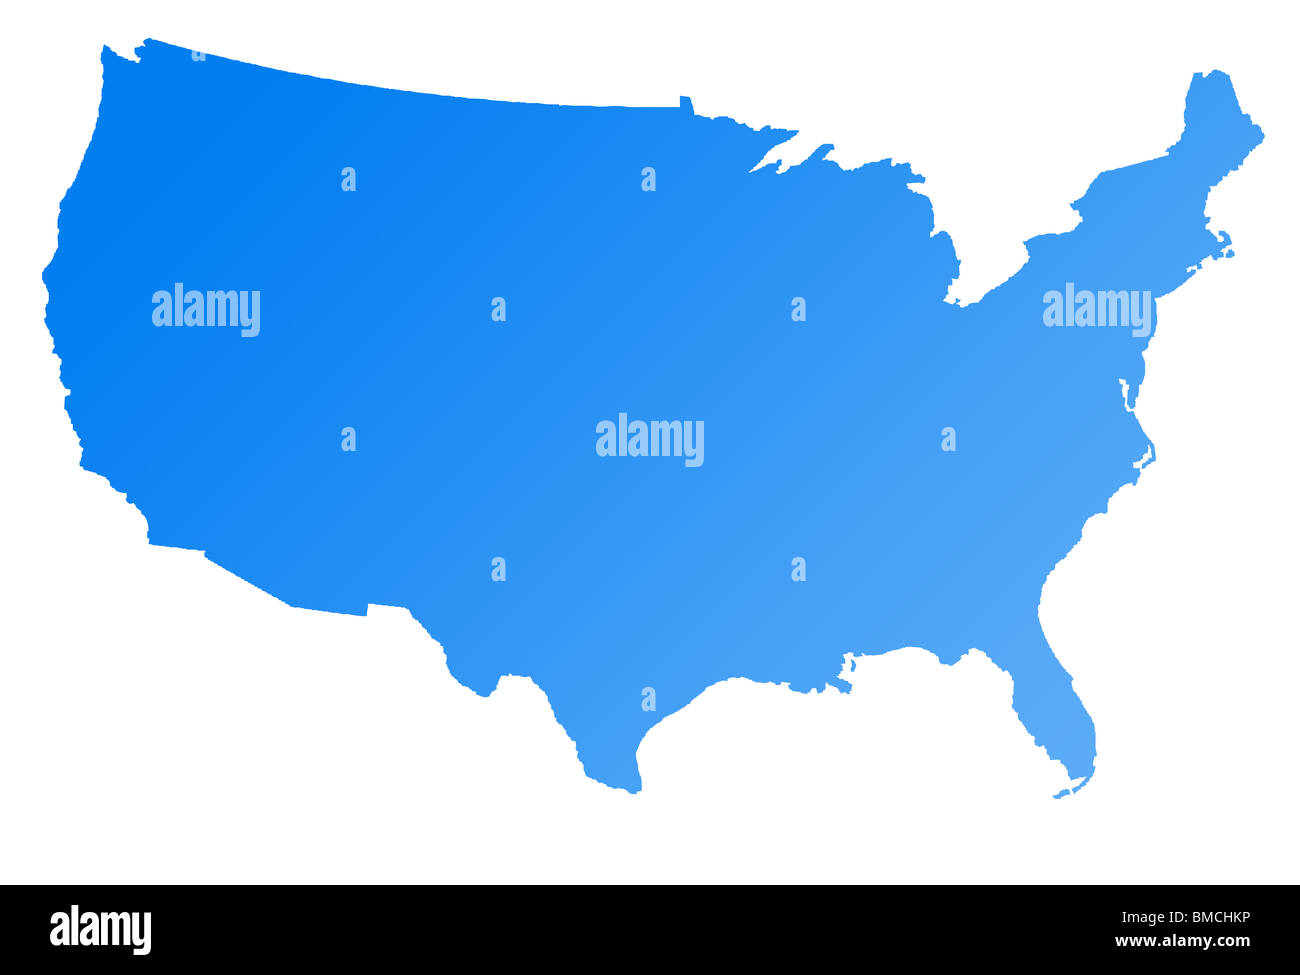 Map of America or USA, isolated on white background. Stock Photo